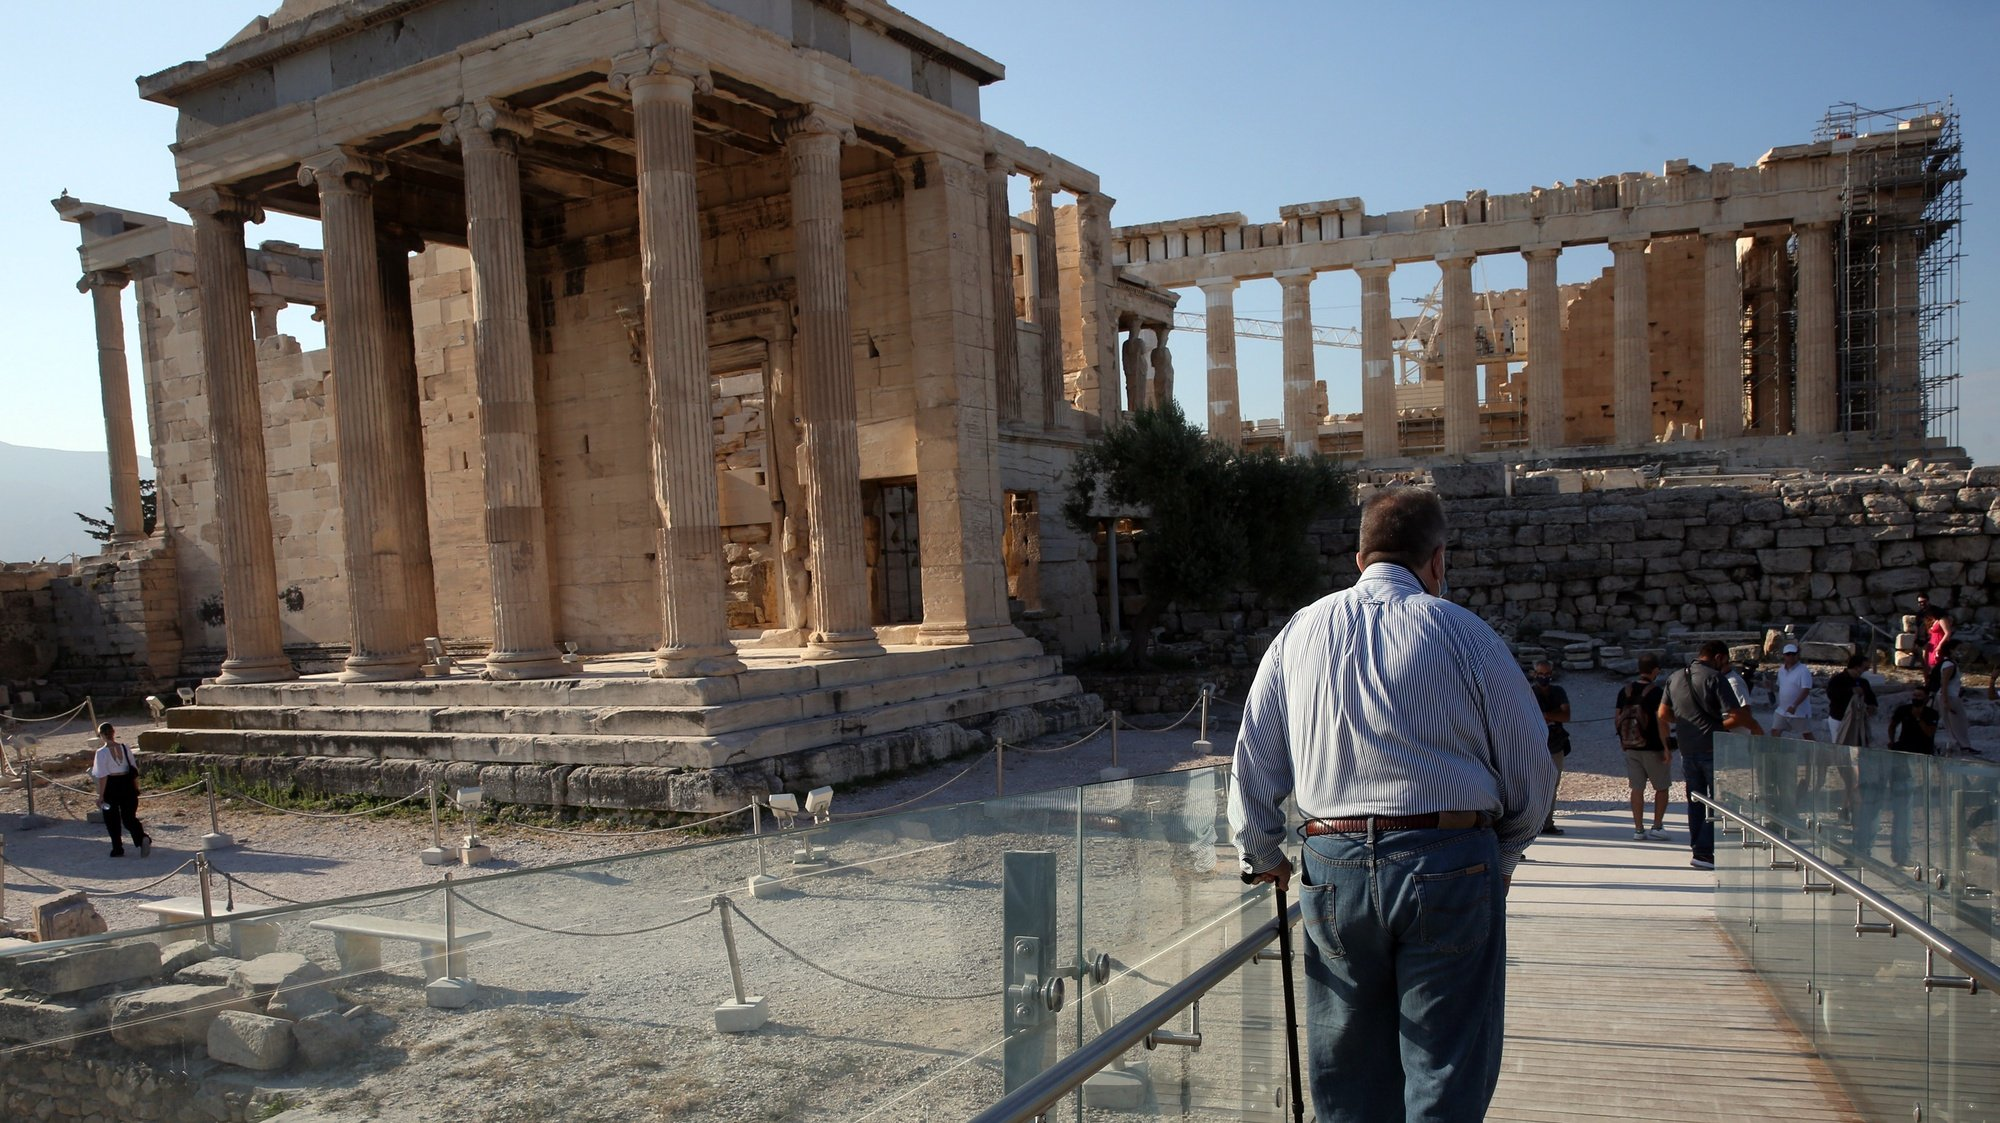 epa09354417 A man with mobility problems just used the elevator to visit the archaeological site of the Acropolis hill in Athens, Greece, 20 July 2021. People with similar problems have the opportunity to visit Acropolis due to the recent improvement works for the access of visitors with mobility issues, special needs and the elderly.  EPA/ORESTIS PANAGIOTOU